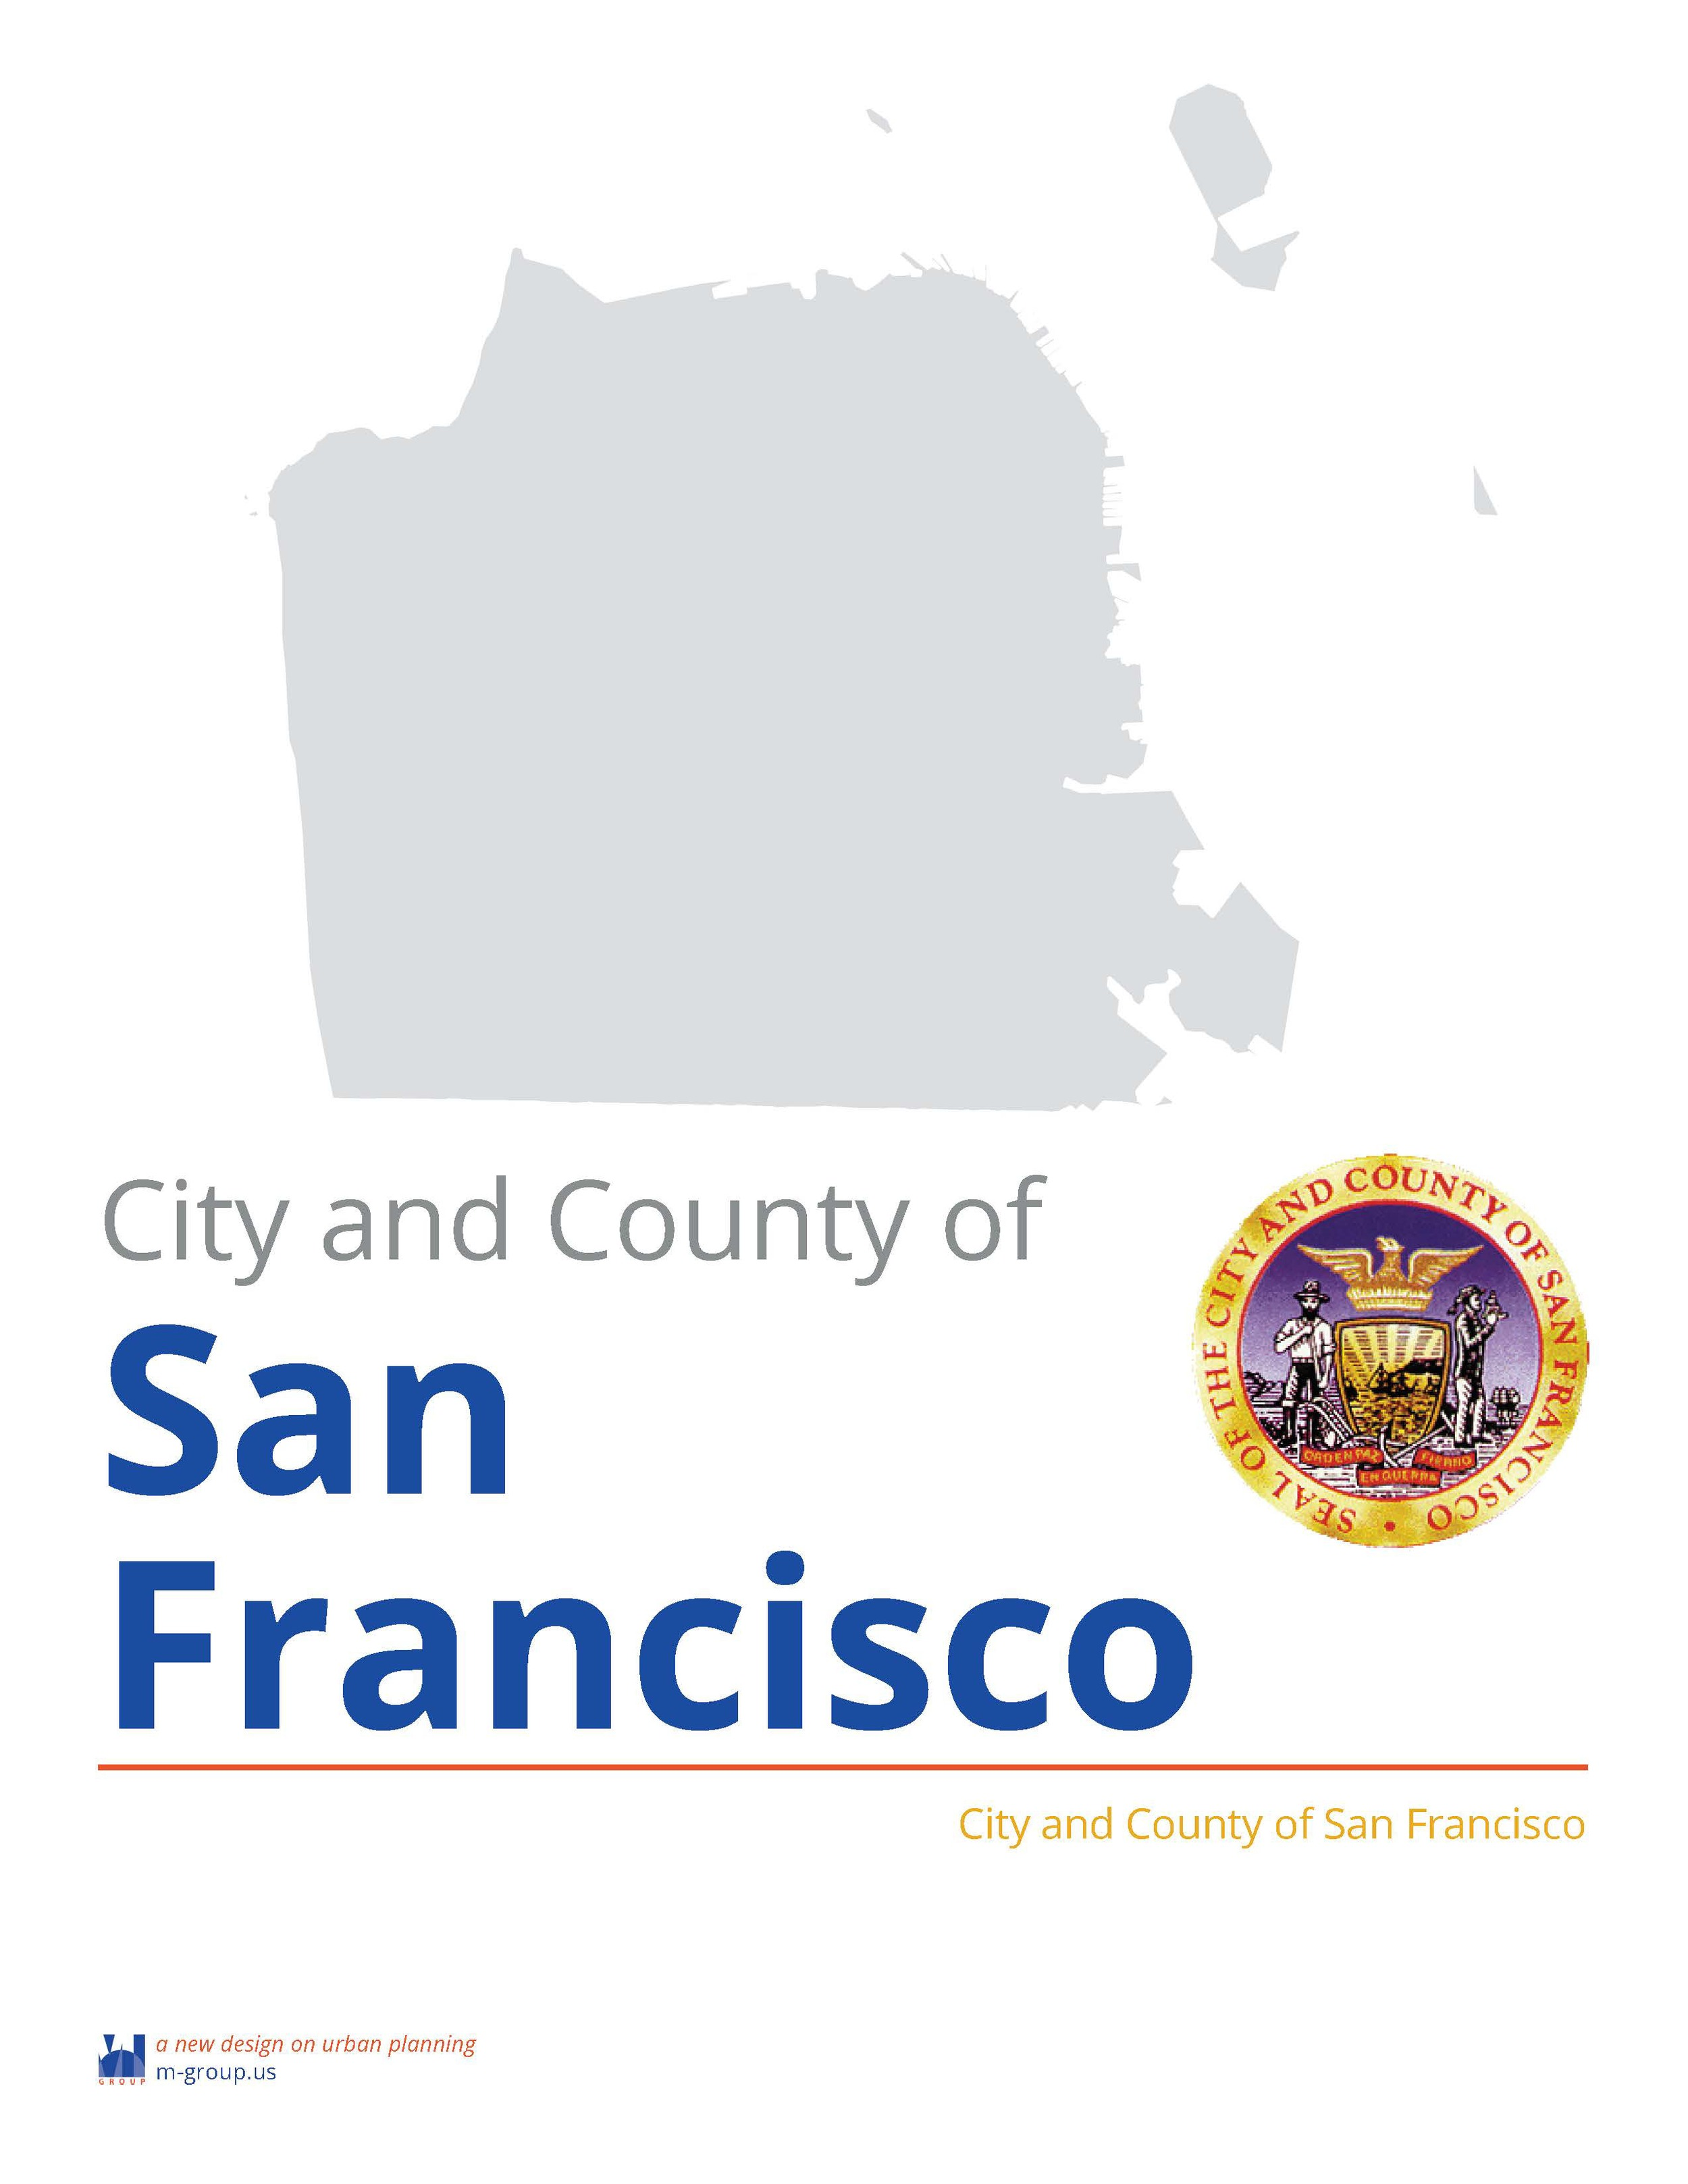 Download San Francisco City and County.